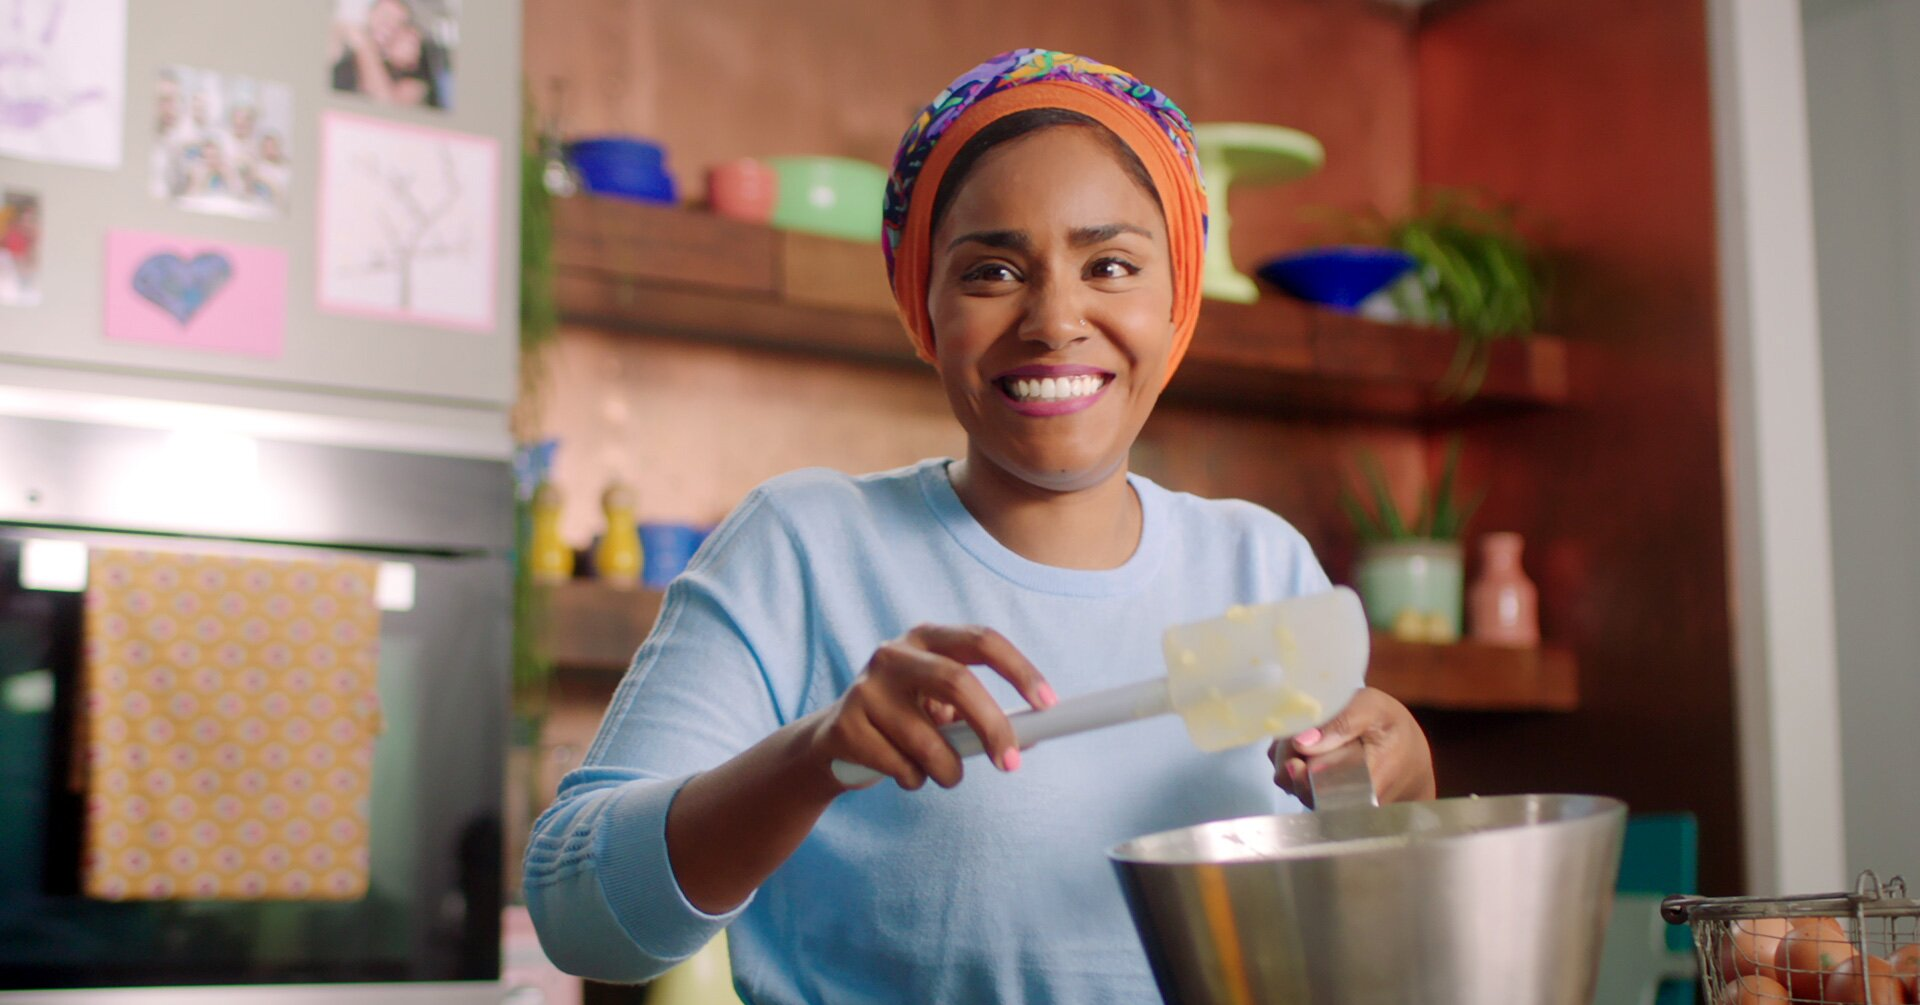 Great British Baking Show's Nadiya Hussain Has a New Baking Series Coming to Netflix—See the Trailer